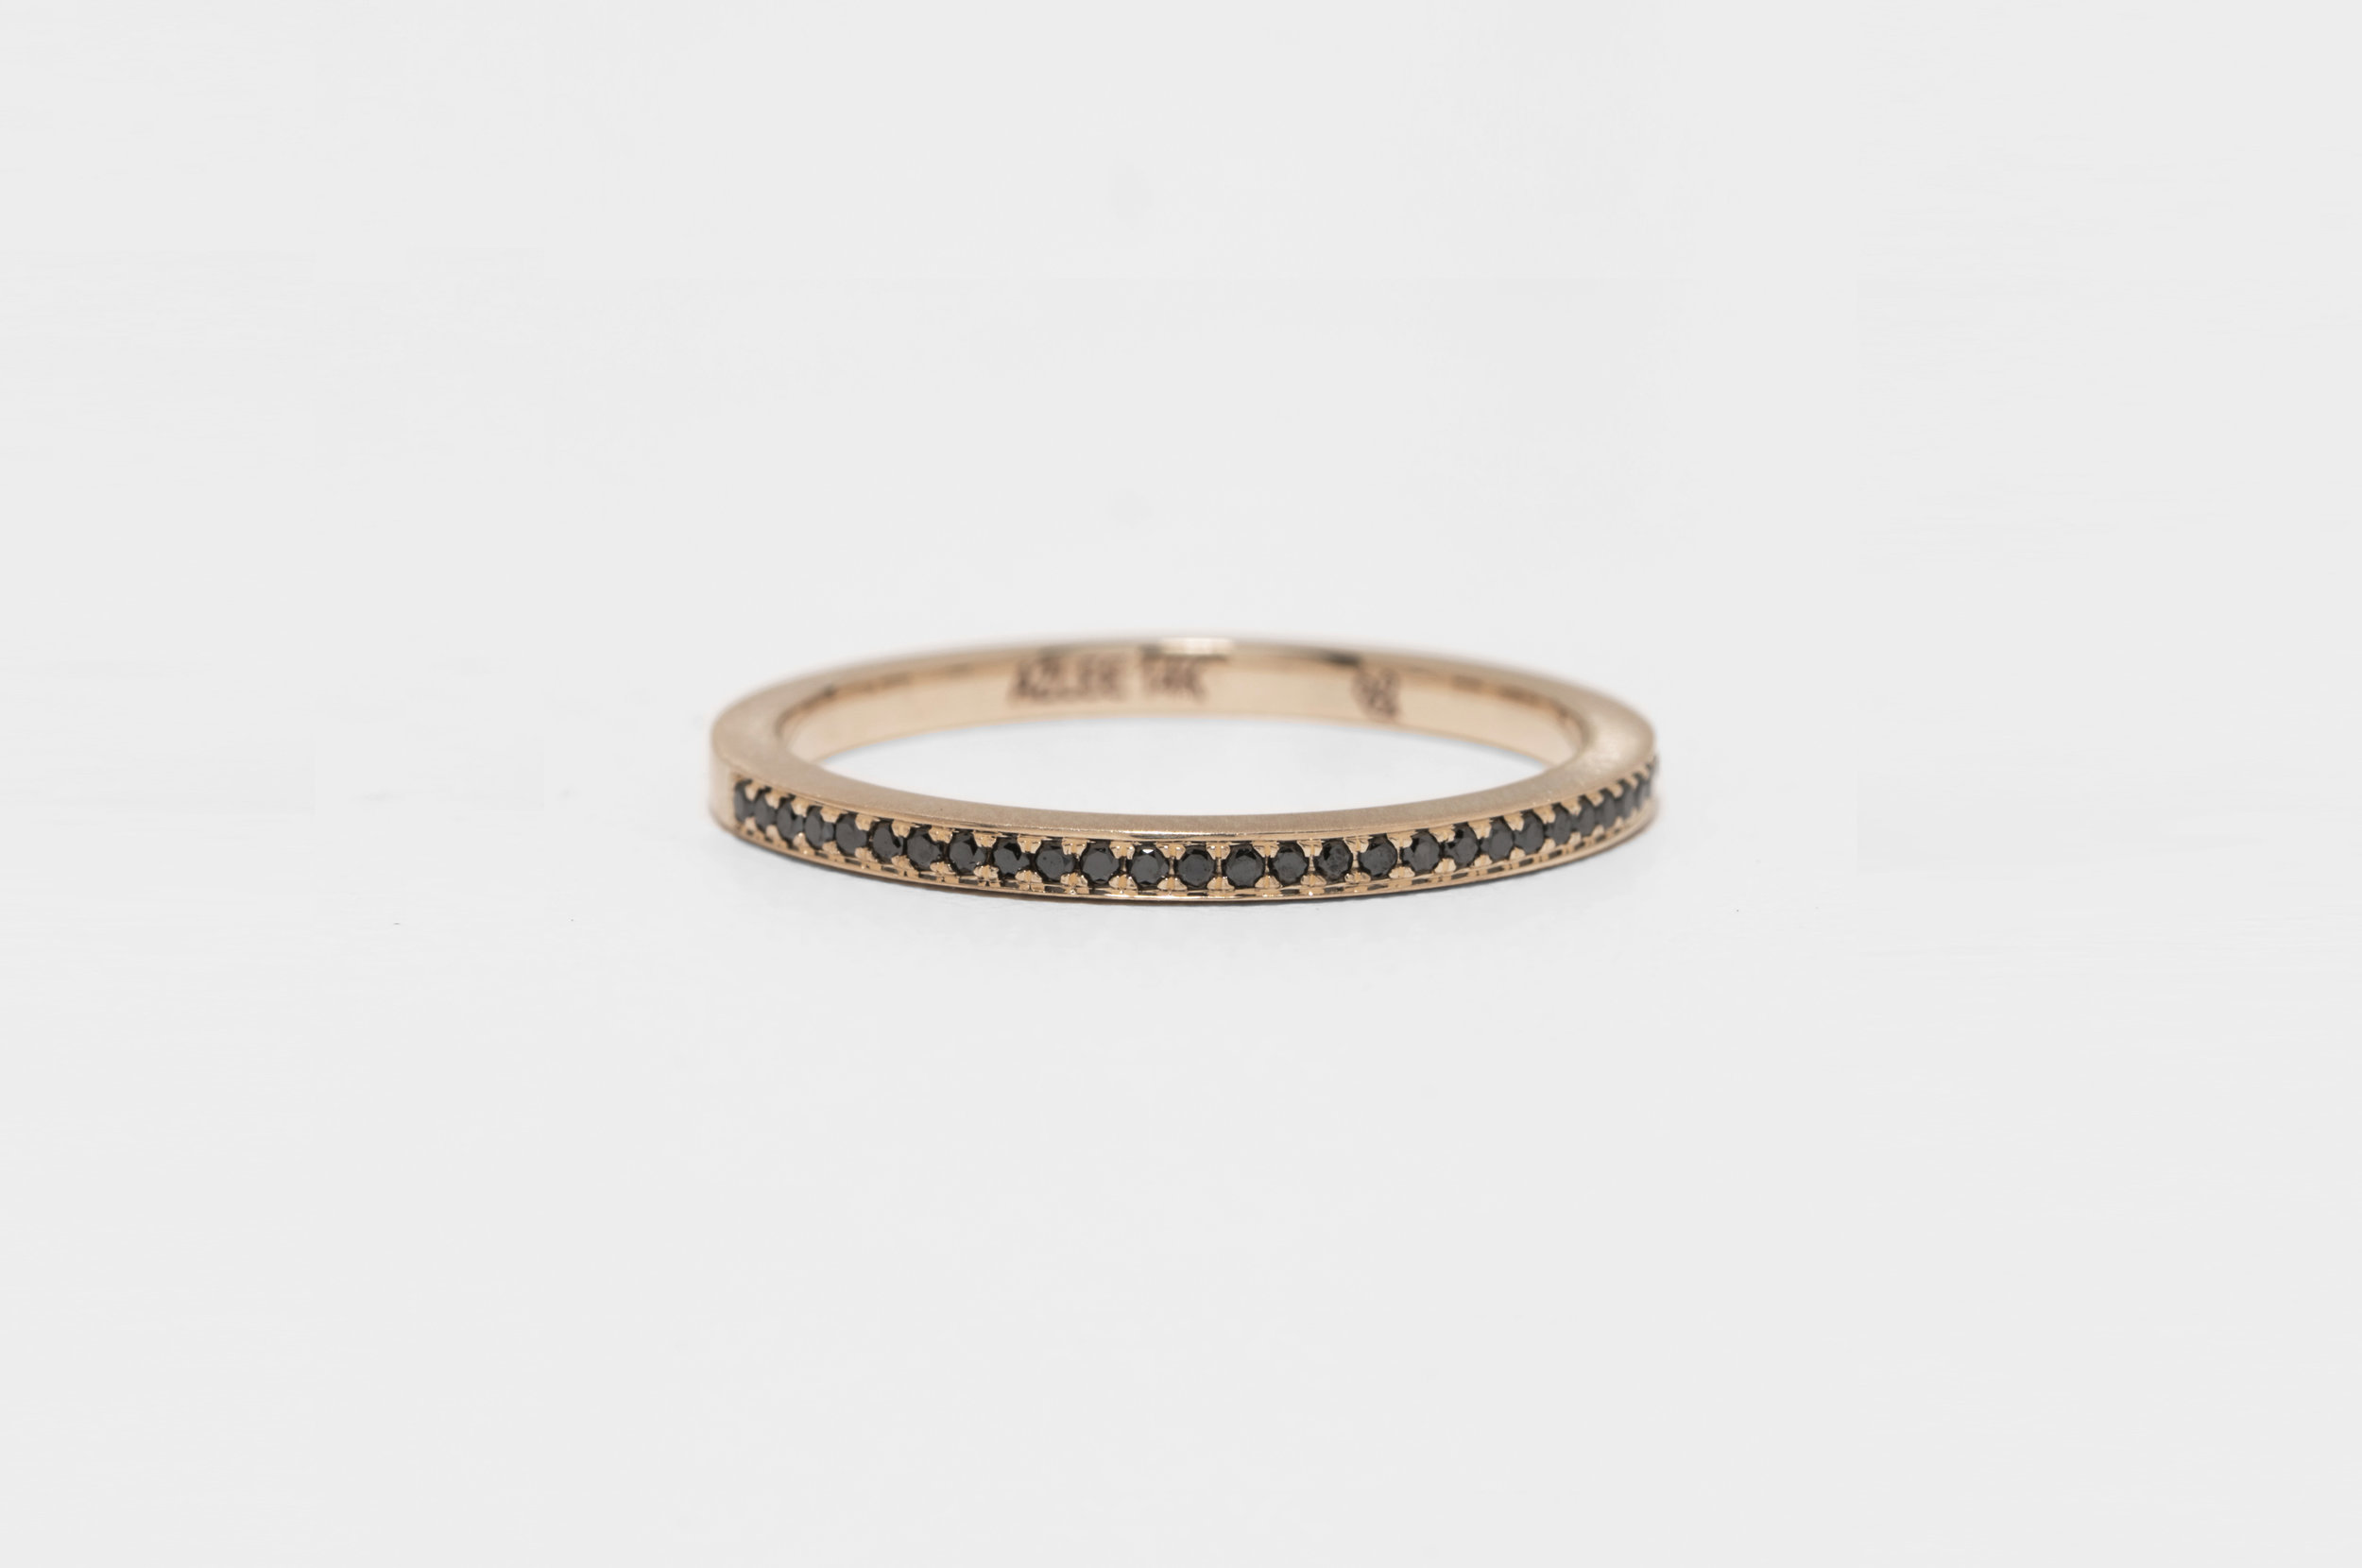 Rose Gold and Black Diamond Band